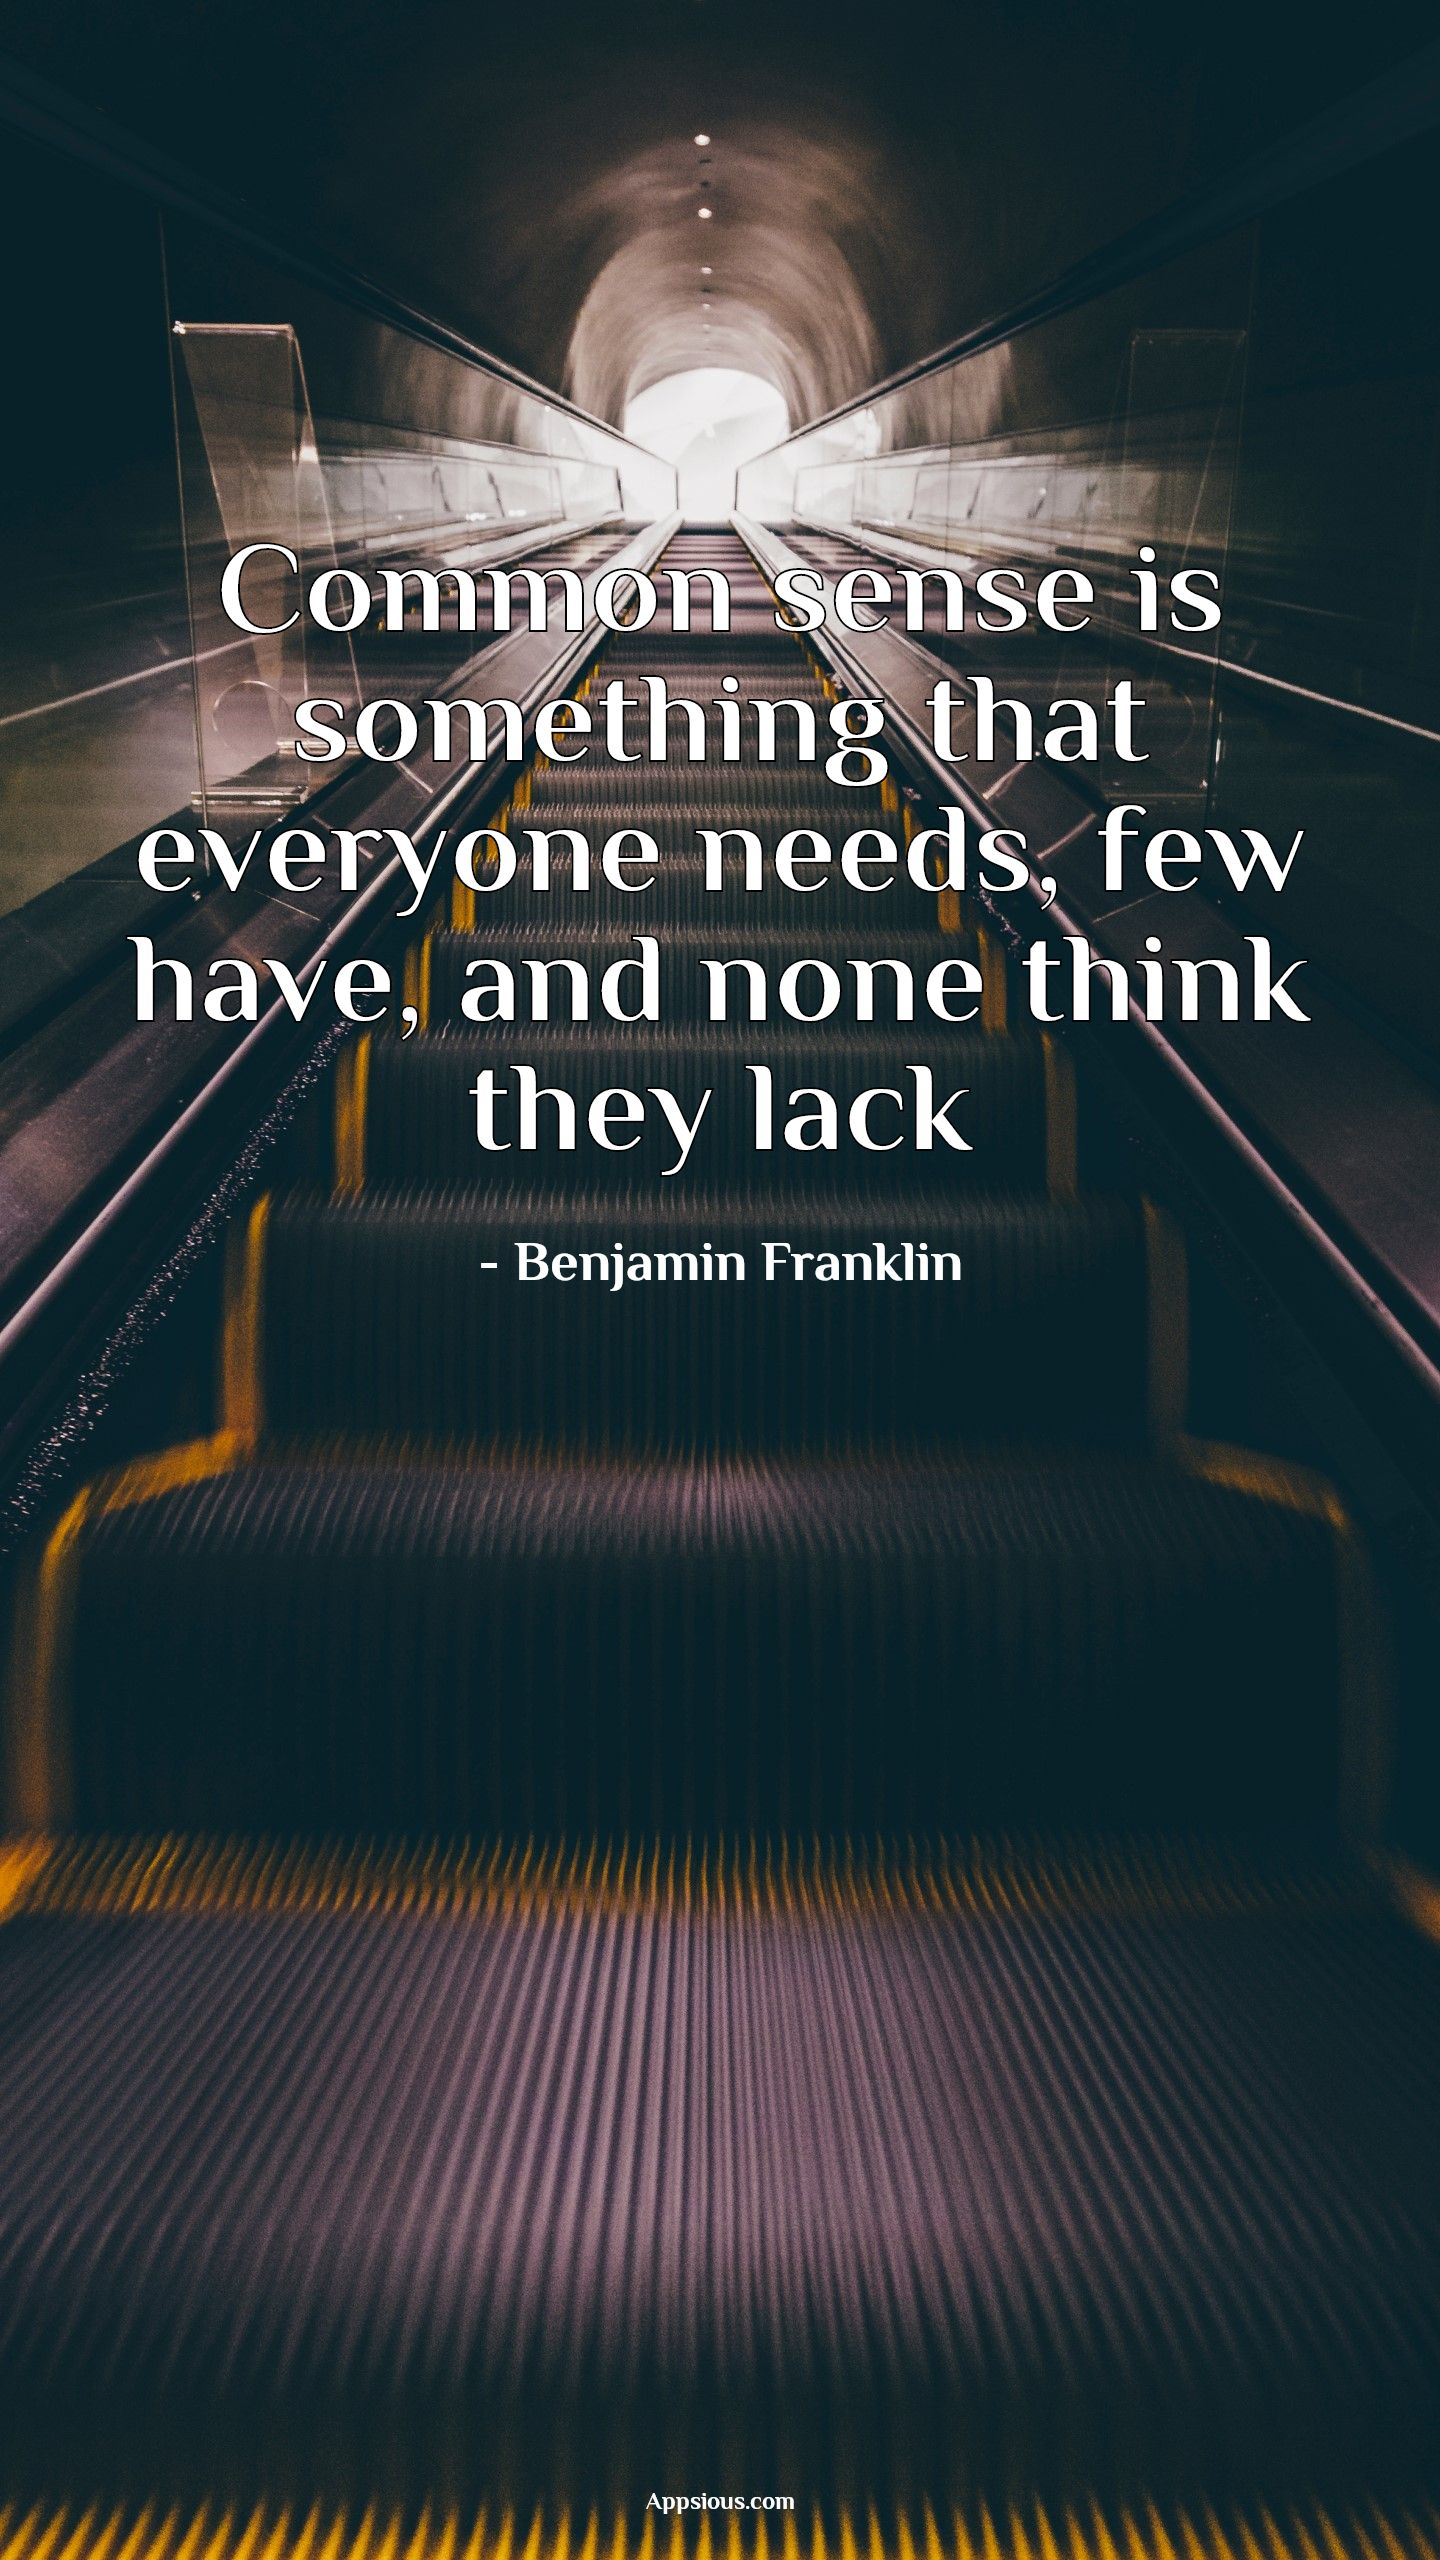 Common sense is something that everyone needs, few have, and none think they lack